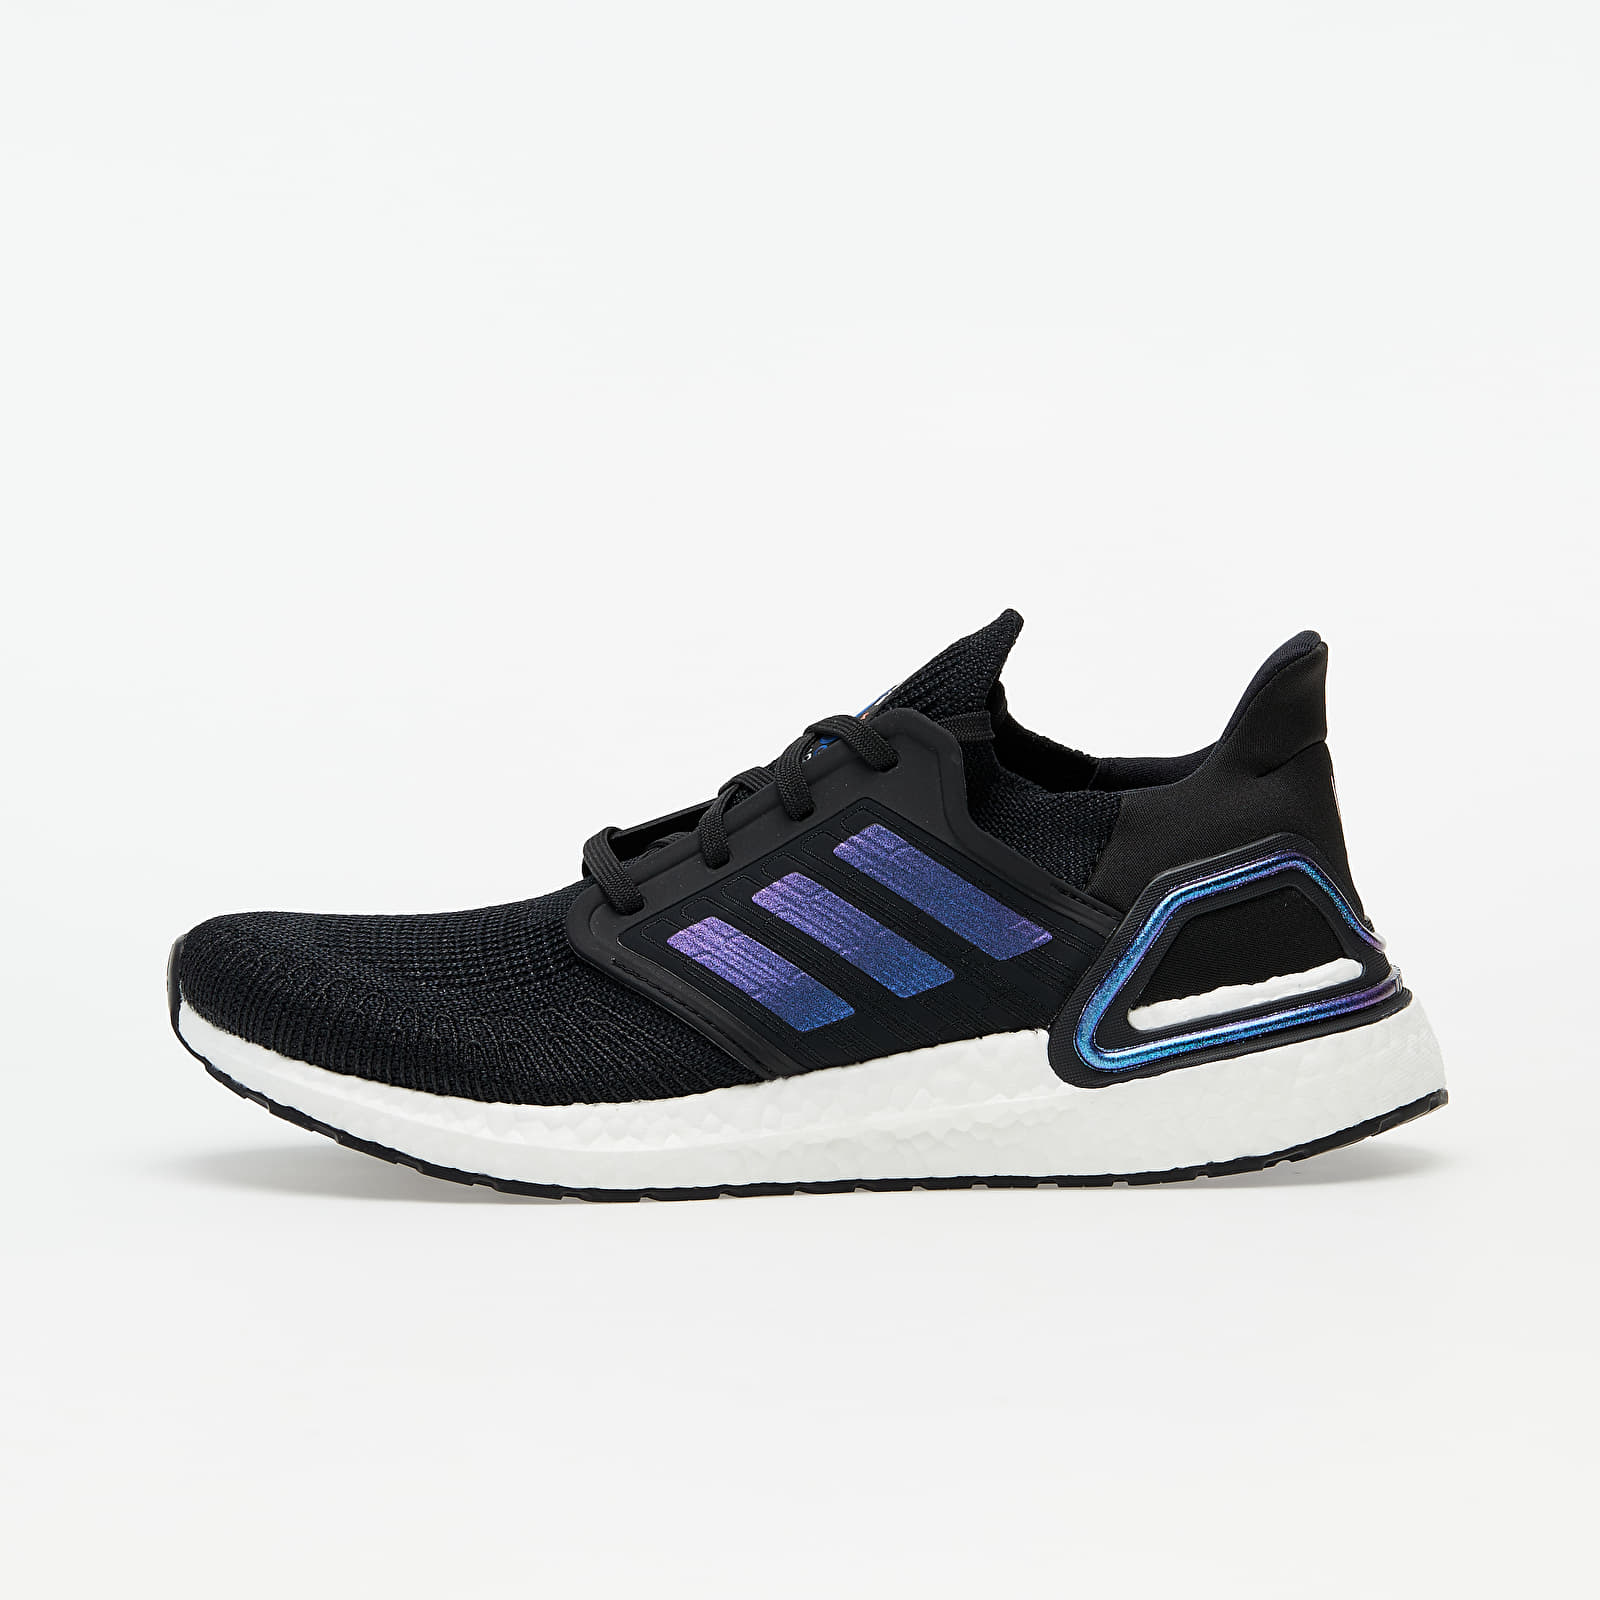 Herenschoenen adidas UltraBOOST 20 Core Black/ Blue Vime/ Ftw White